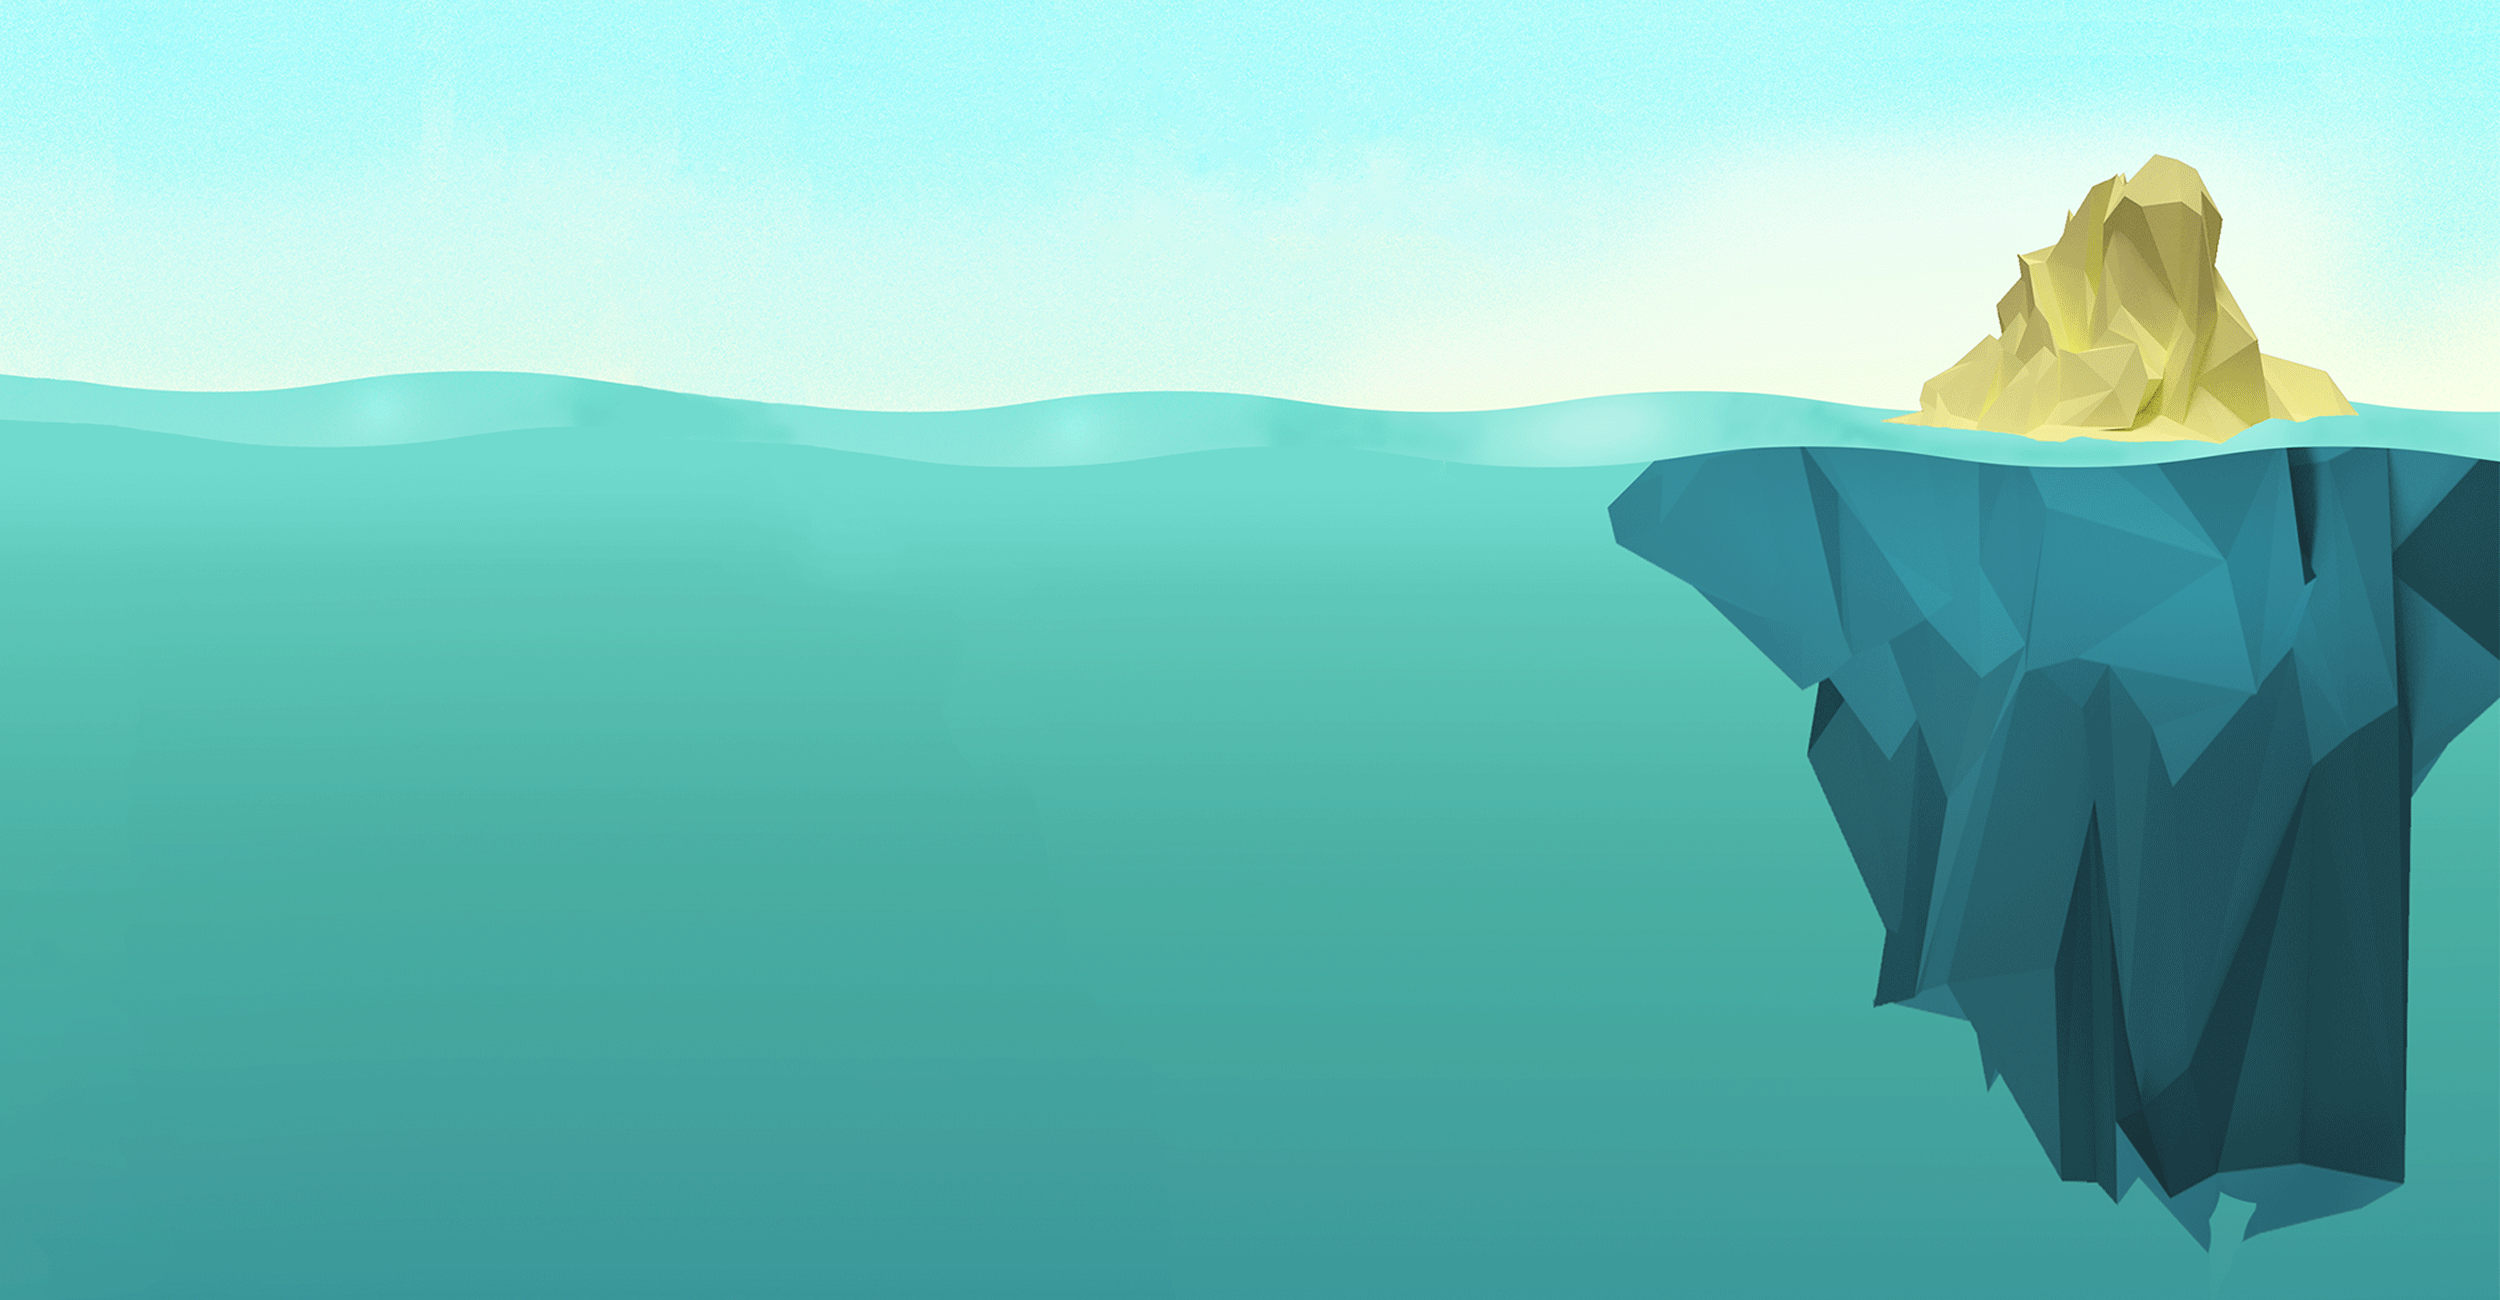 Iceberg en low poly